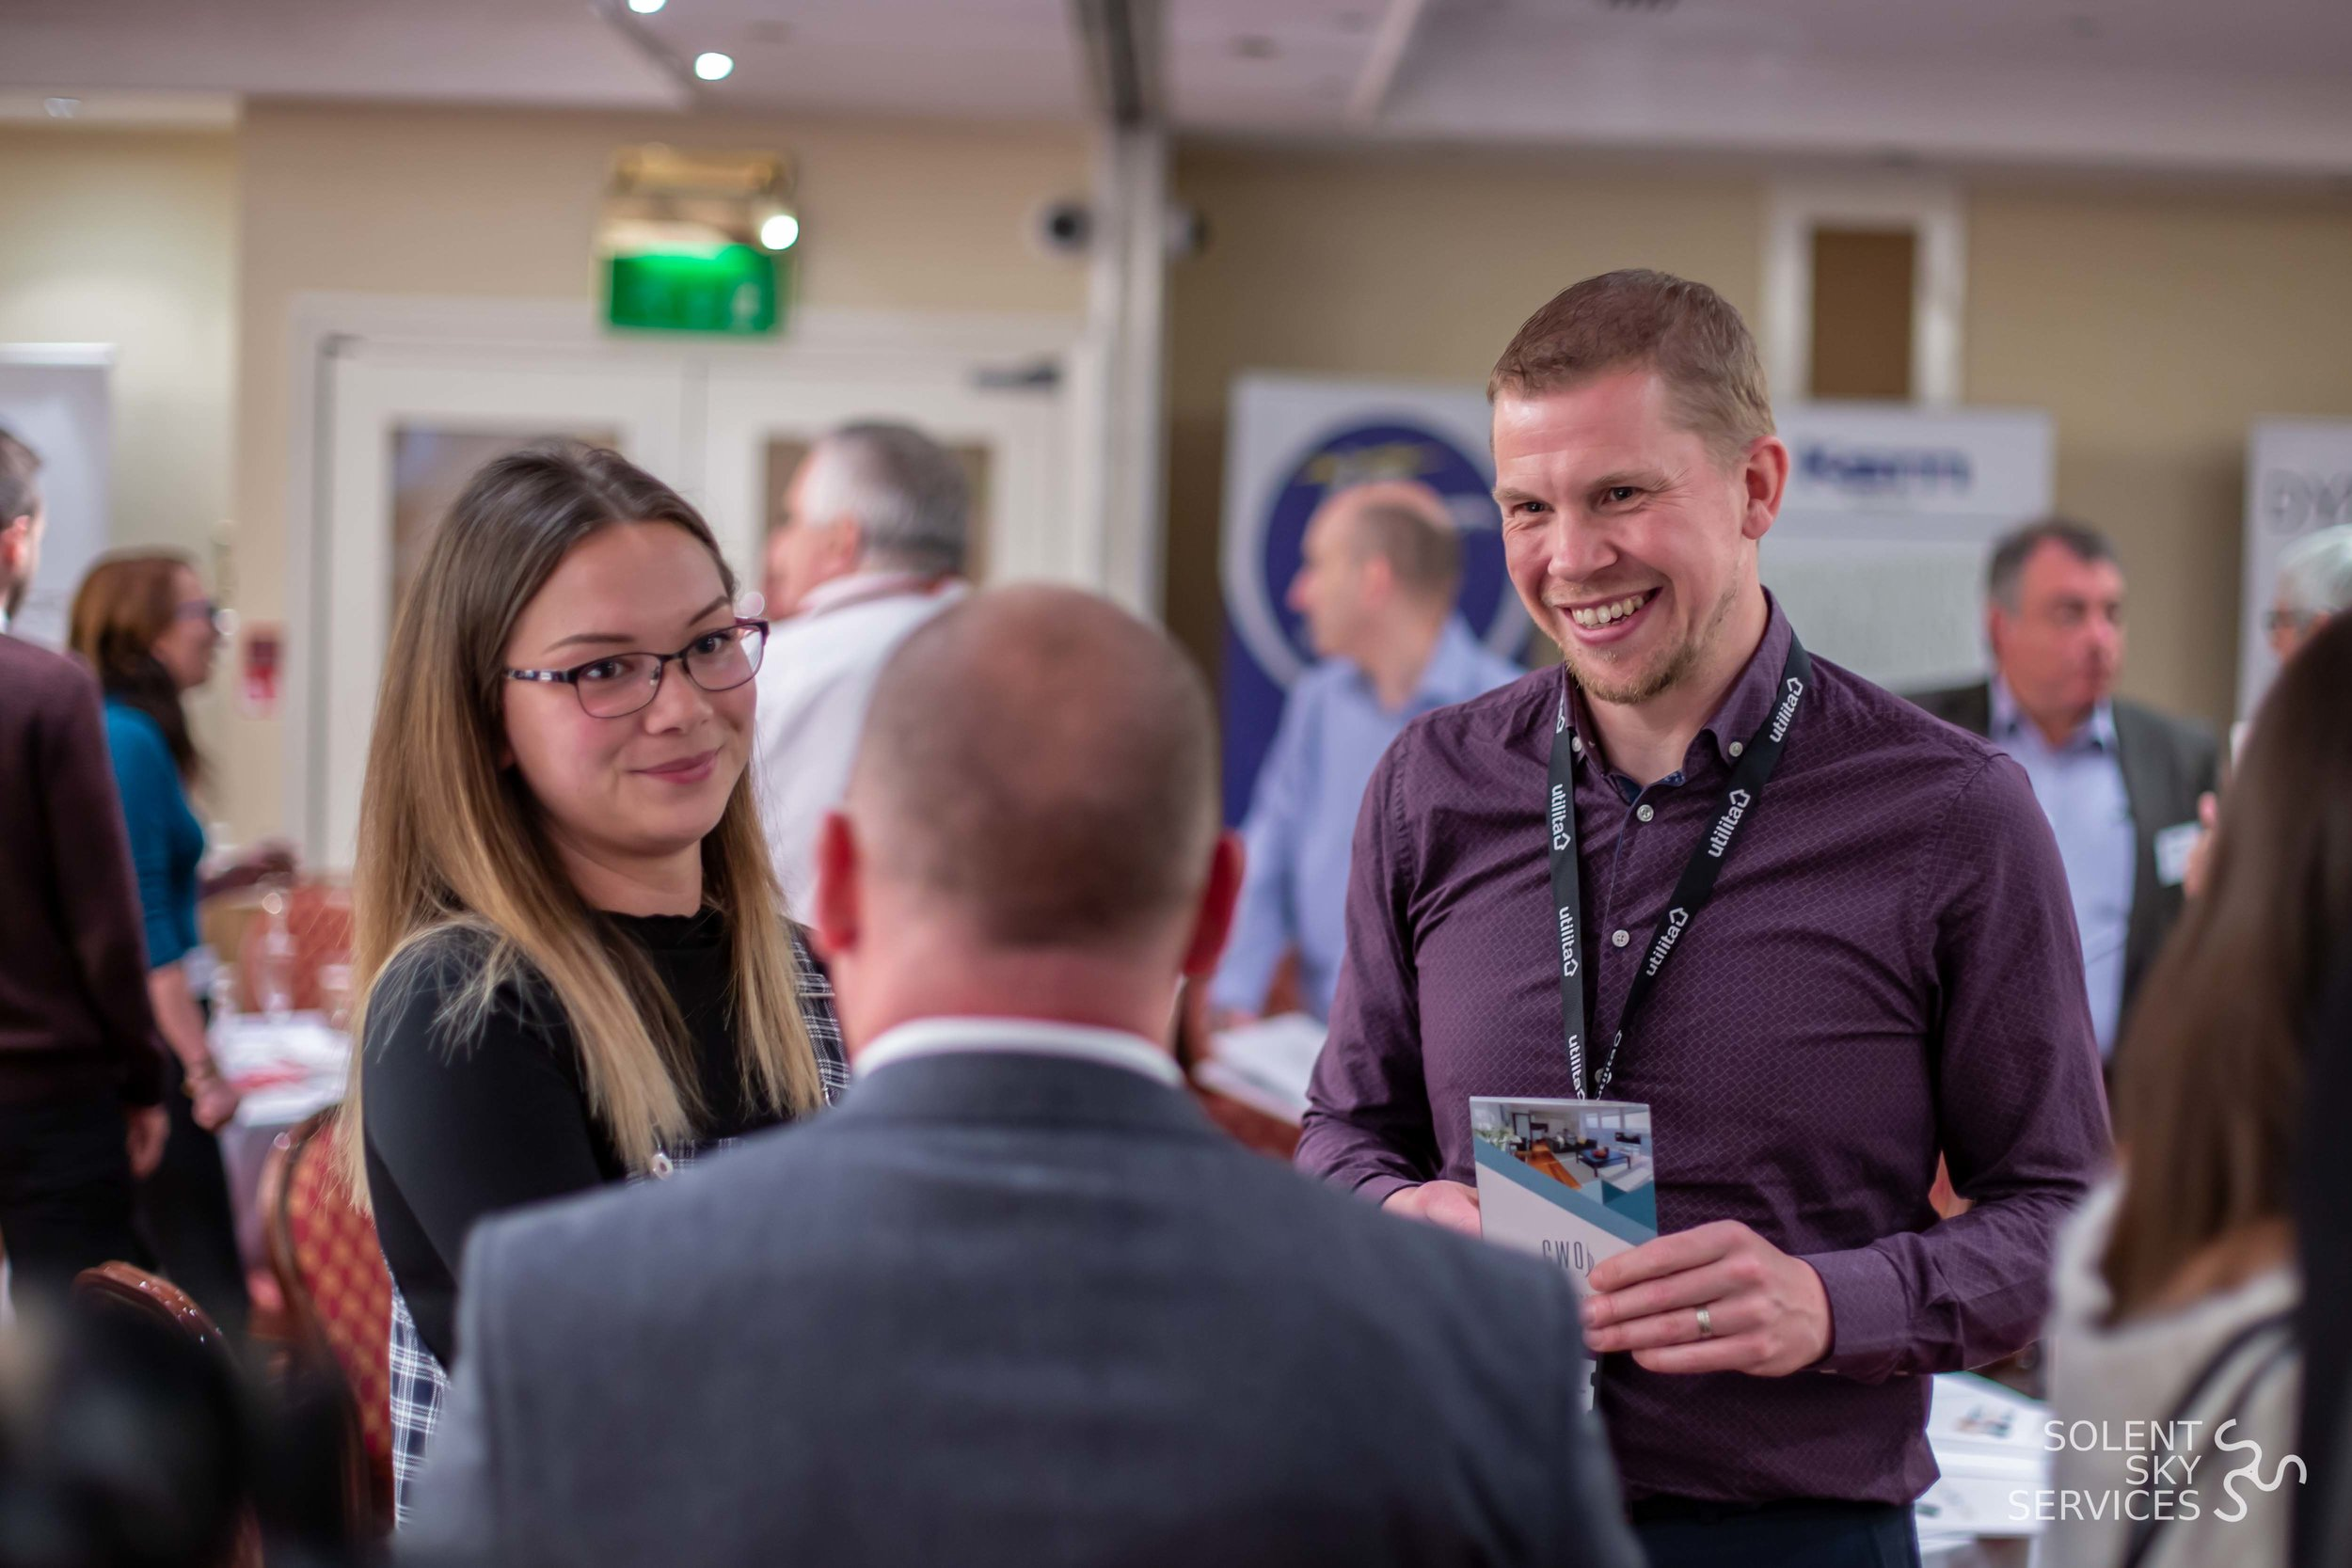 Synergy Success Networking Event #2 - Solent Sky Services-98.JPG